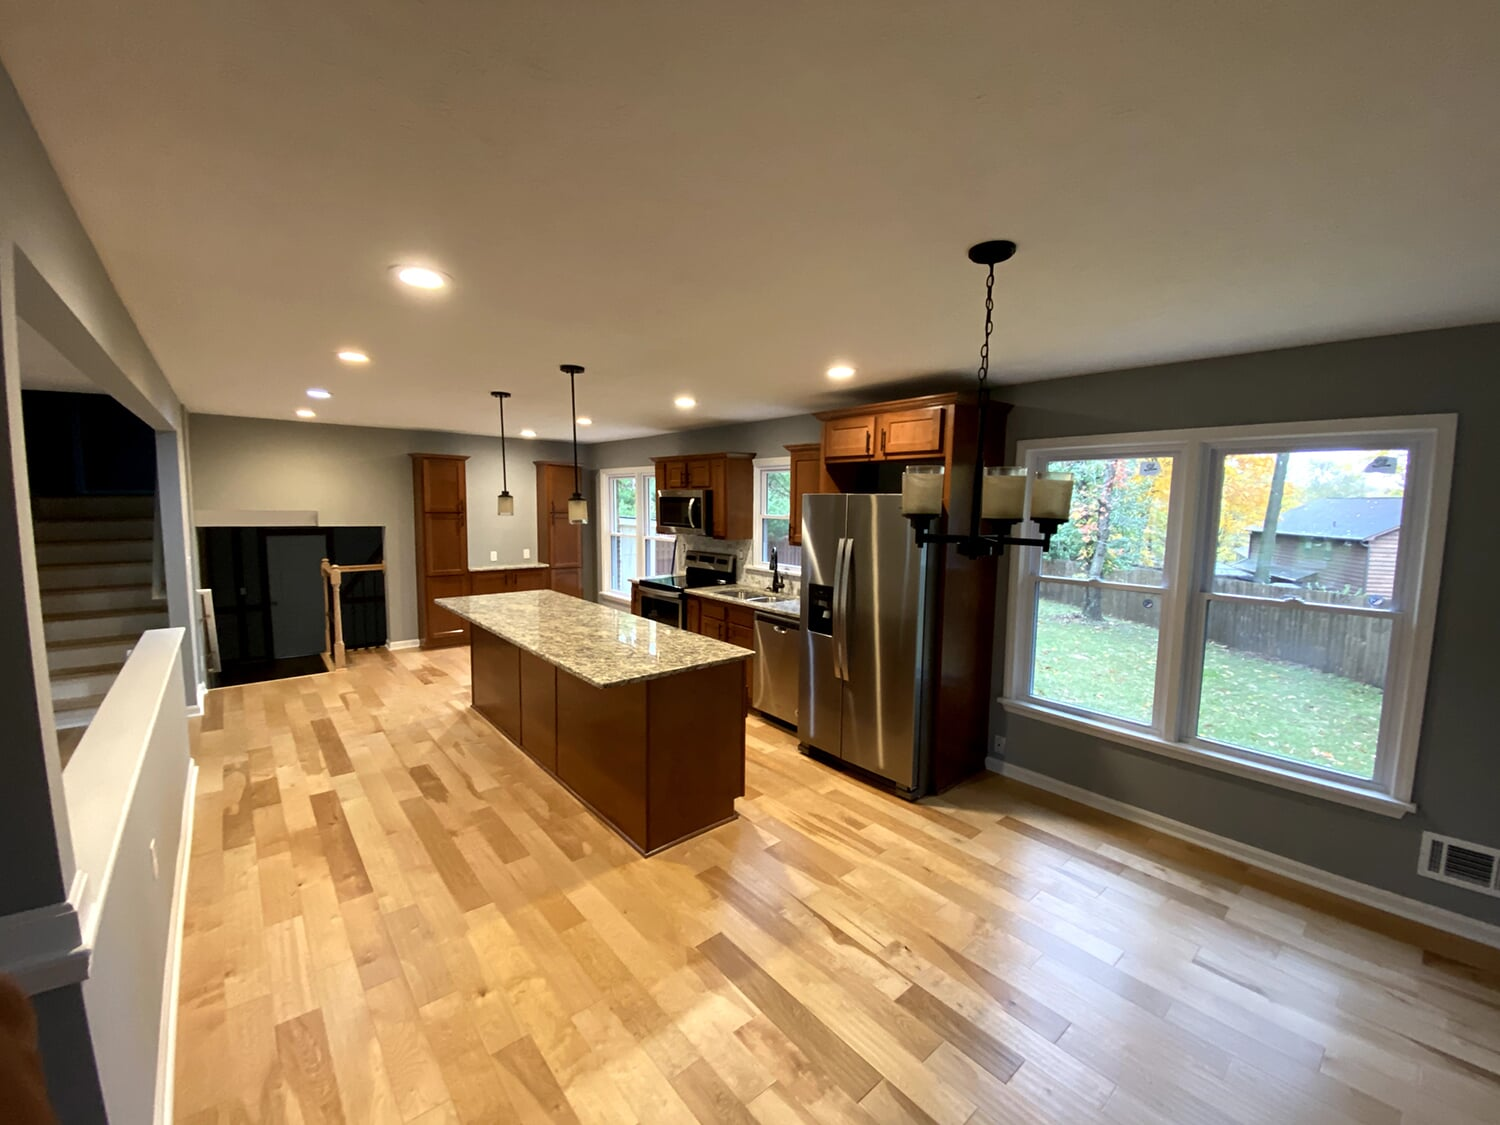 Modern kitchen renovation with wood look flooring in Goshen, KY from Unique Flooring Solutions